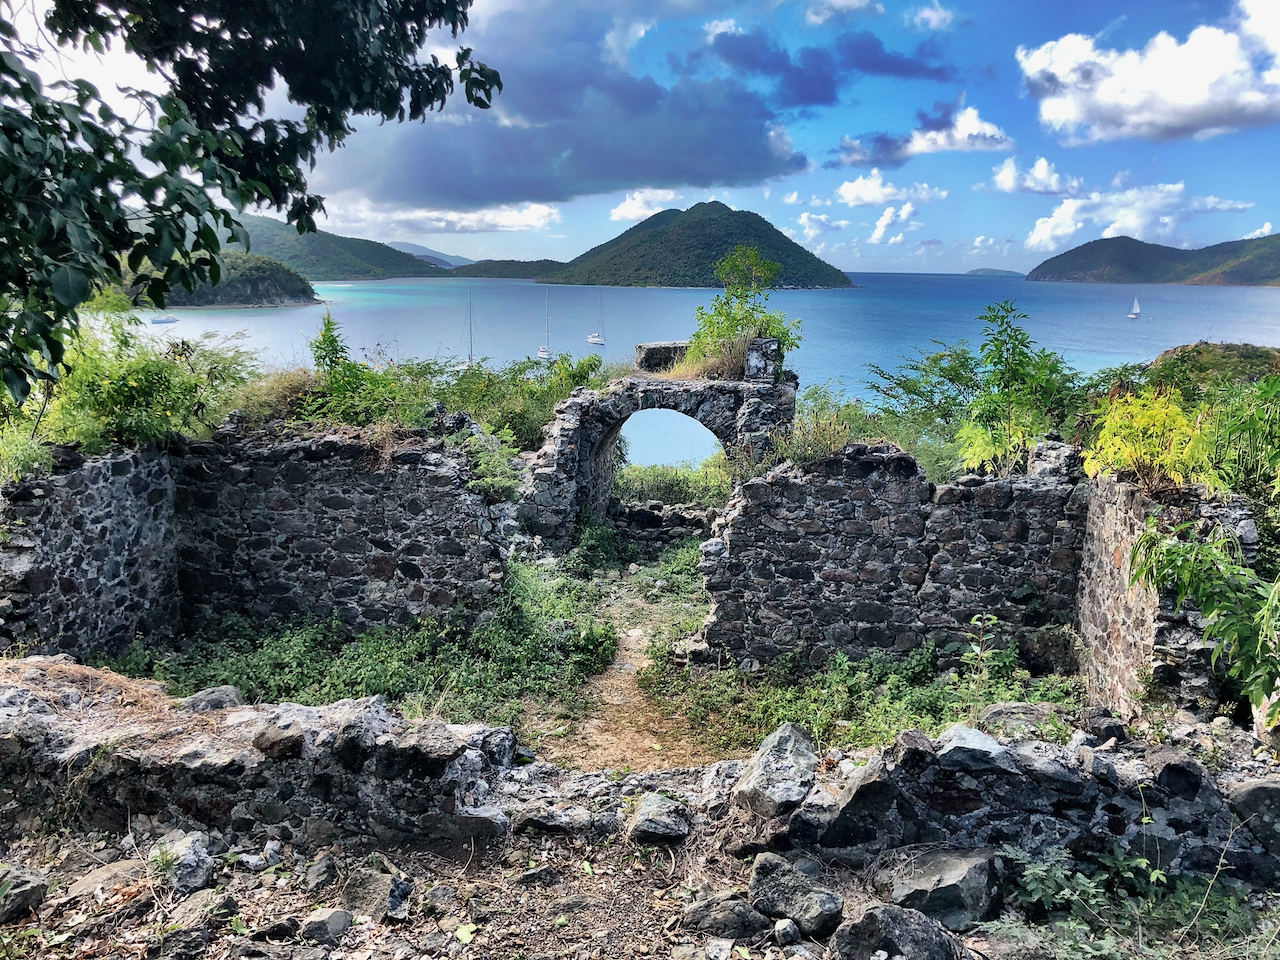 Ruins near Waterlemon Bay in US Virgin Islands National Park